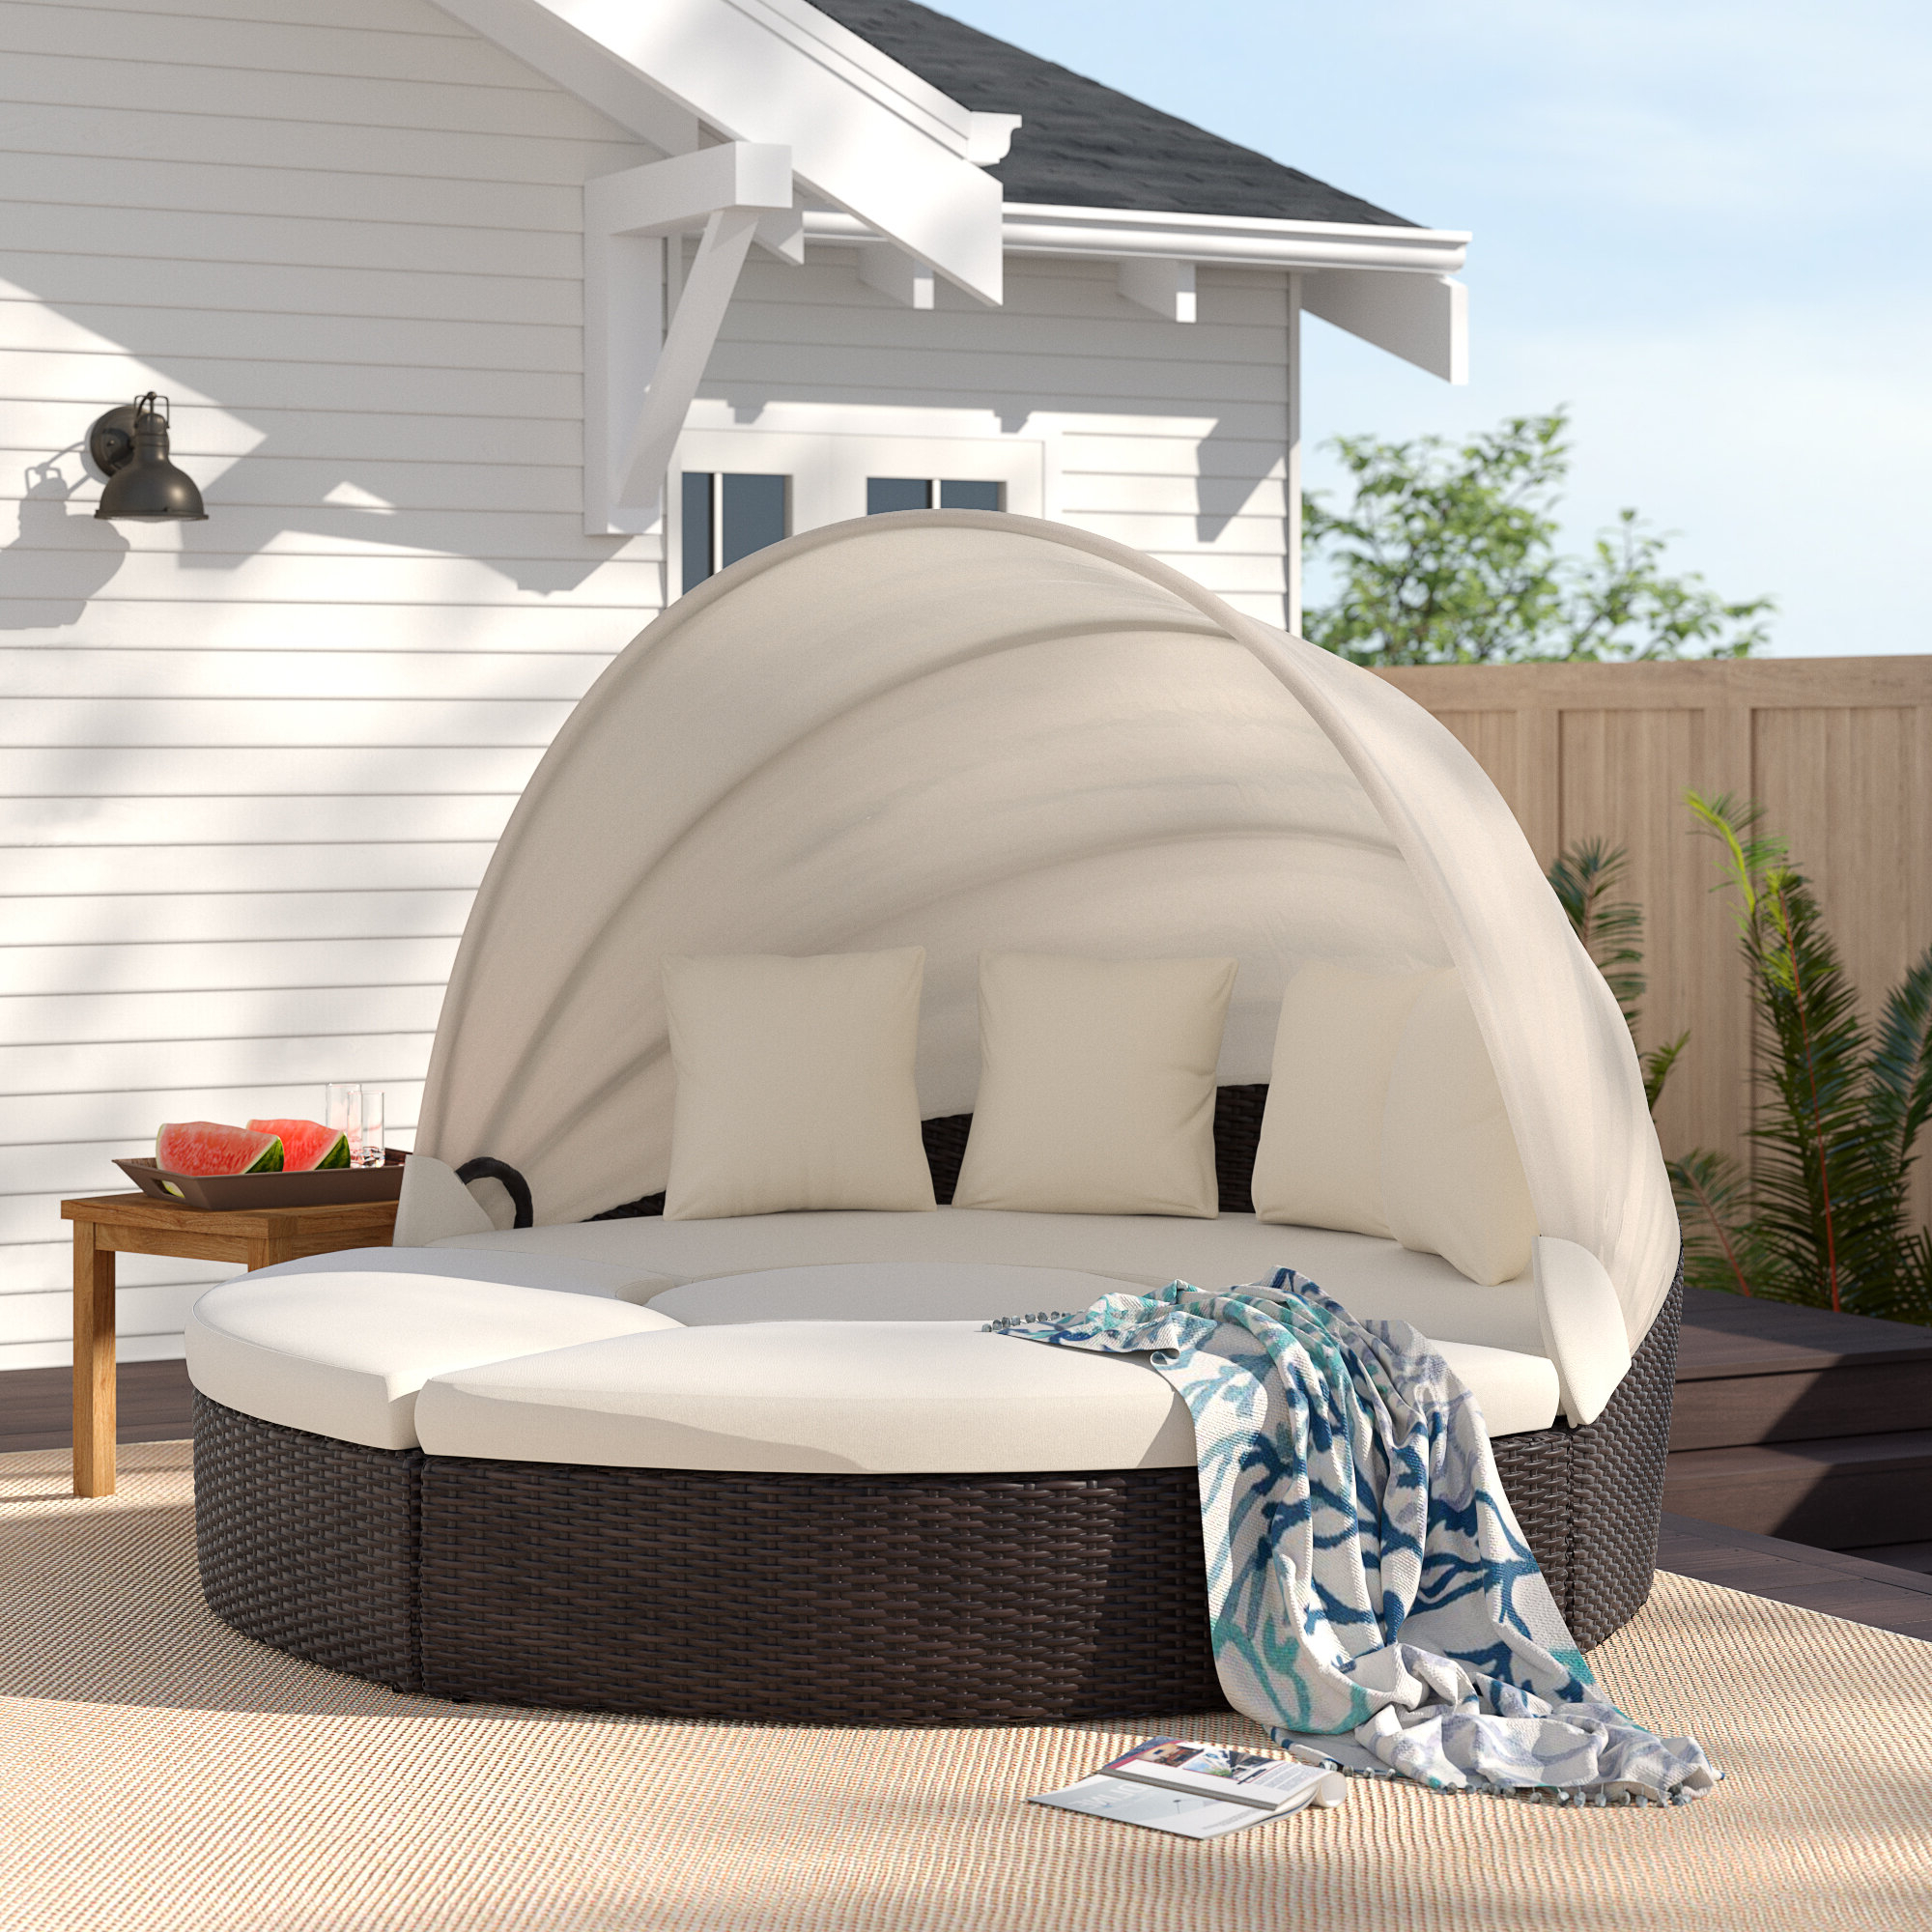 2020 Harlow Patio Daybeds With Cushions In Antigua Patio Daybed With Cushions (View 3 of 20)